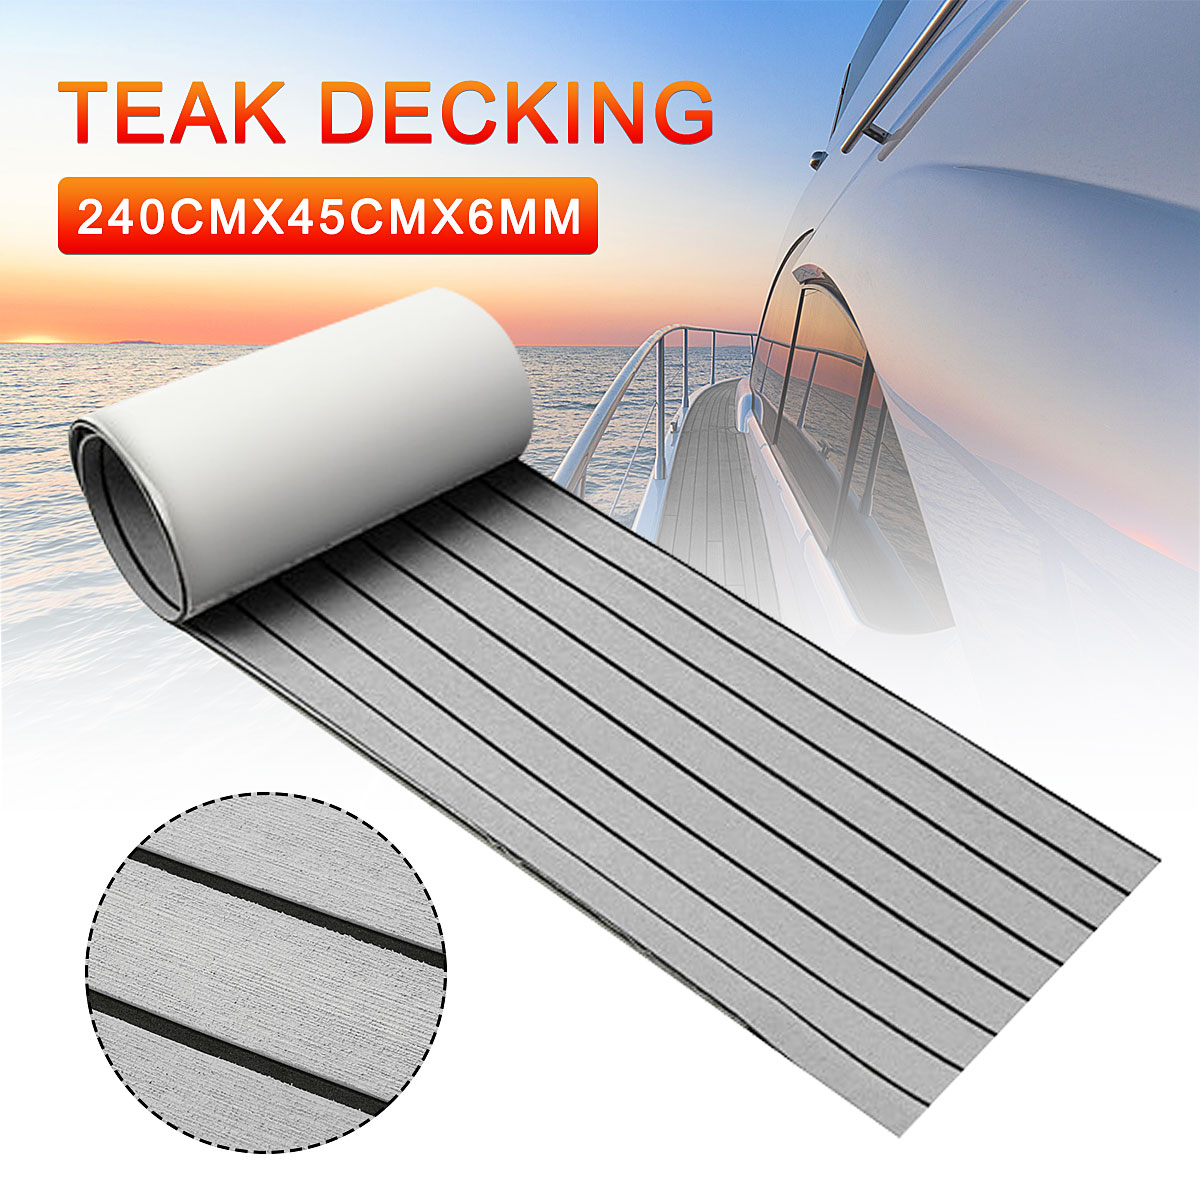 240x45cm Self Adhesive EVA Foam Floor Mat For Marine Boat Yacht RV Foam Teak Deck Sheet Boat Synthetic Foam Floor Mat Carpet